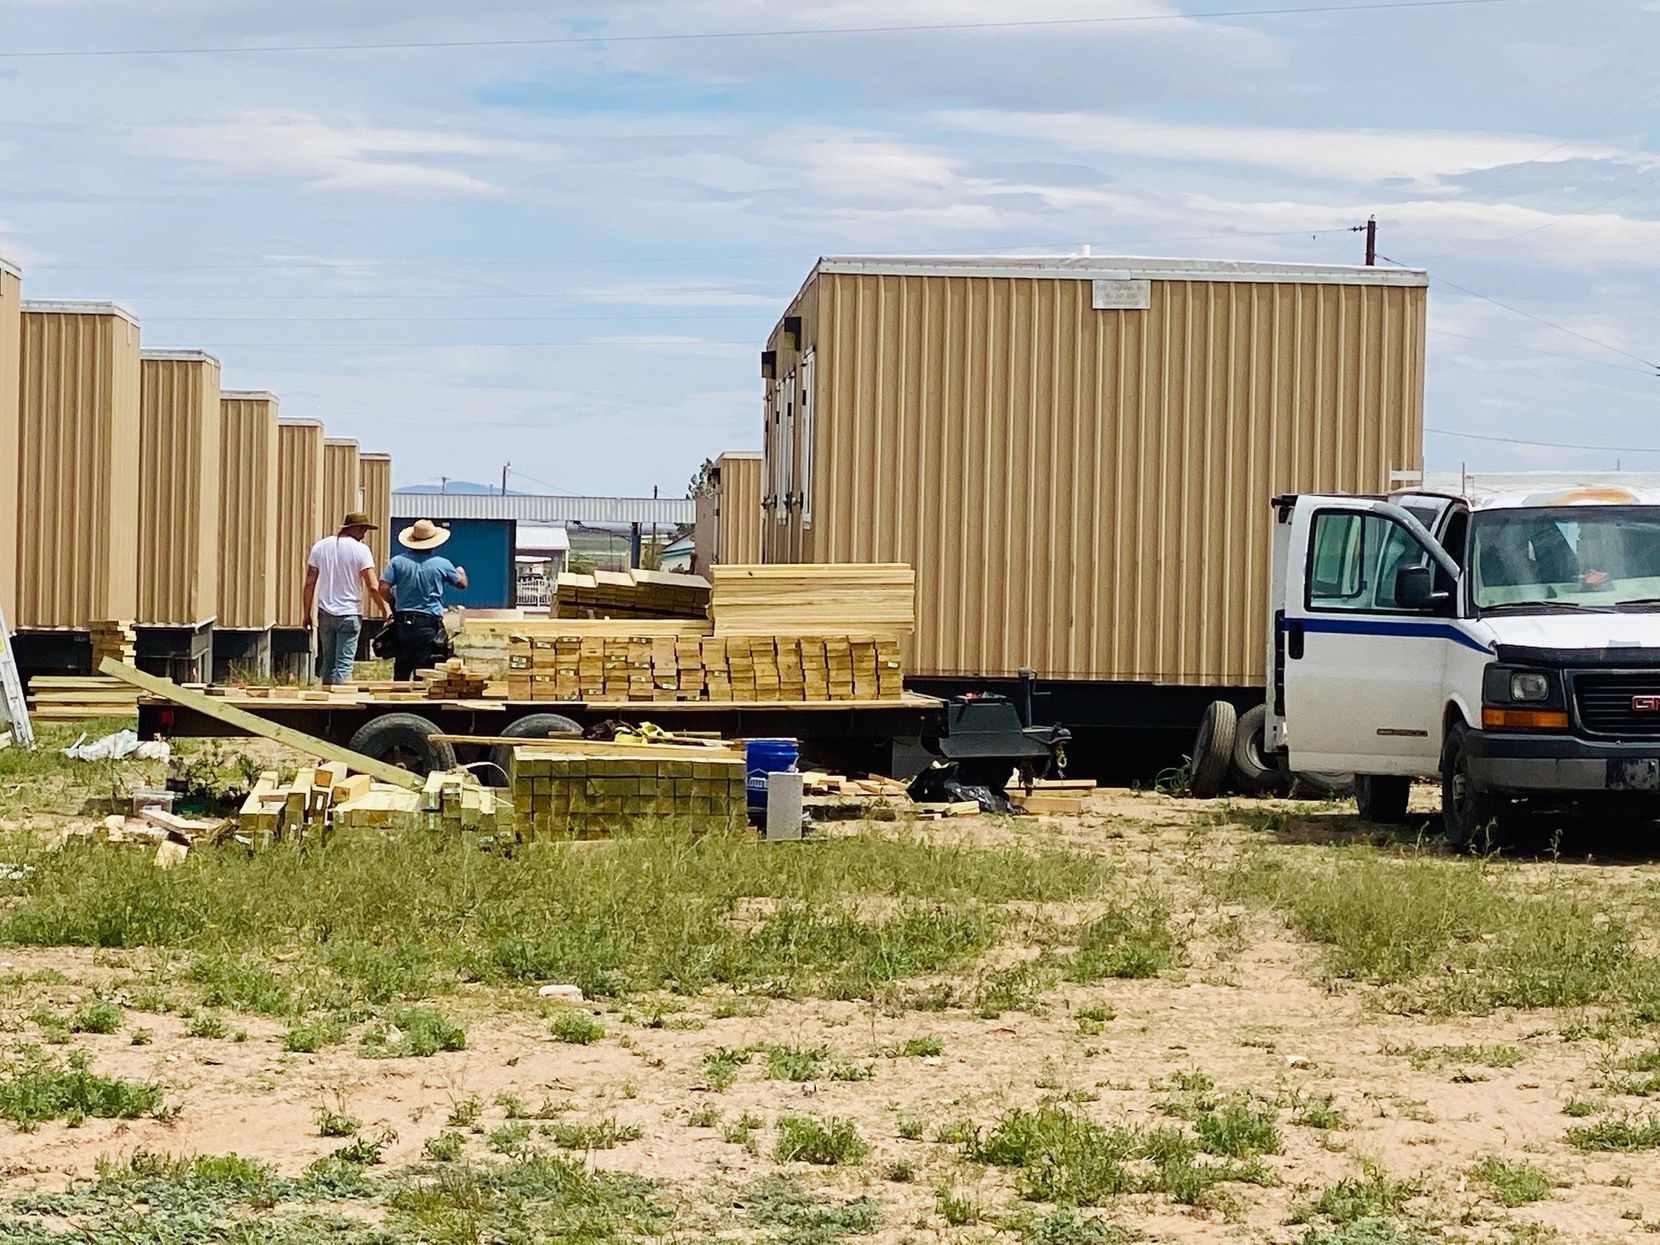 Construction work is so plentiful that SLSCO Ltd., a government contractor, is building a mancamp for at least 80 workers in the historic district of Columbus, N.M.